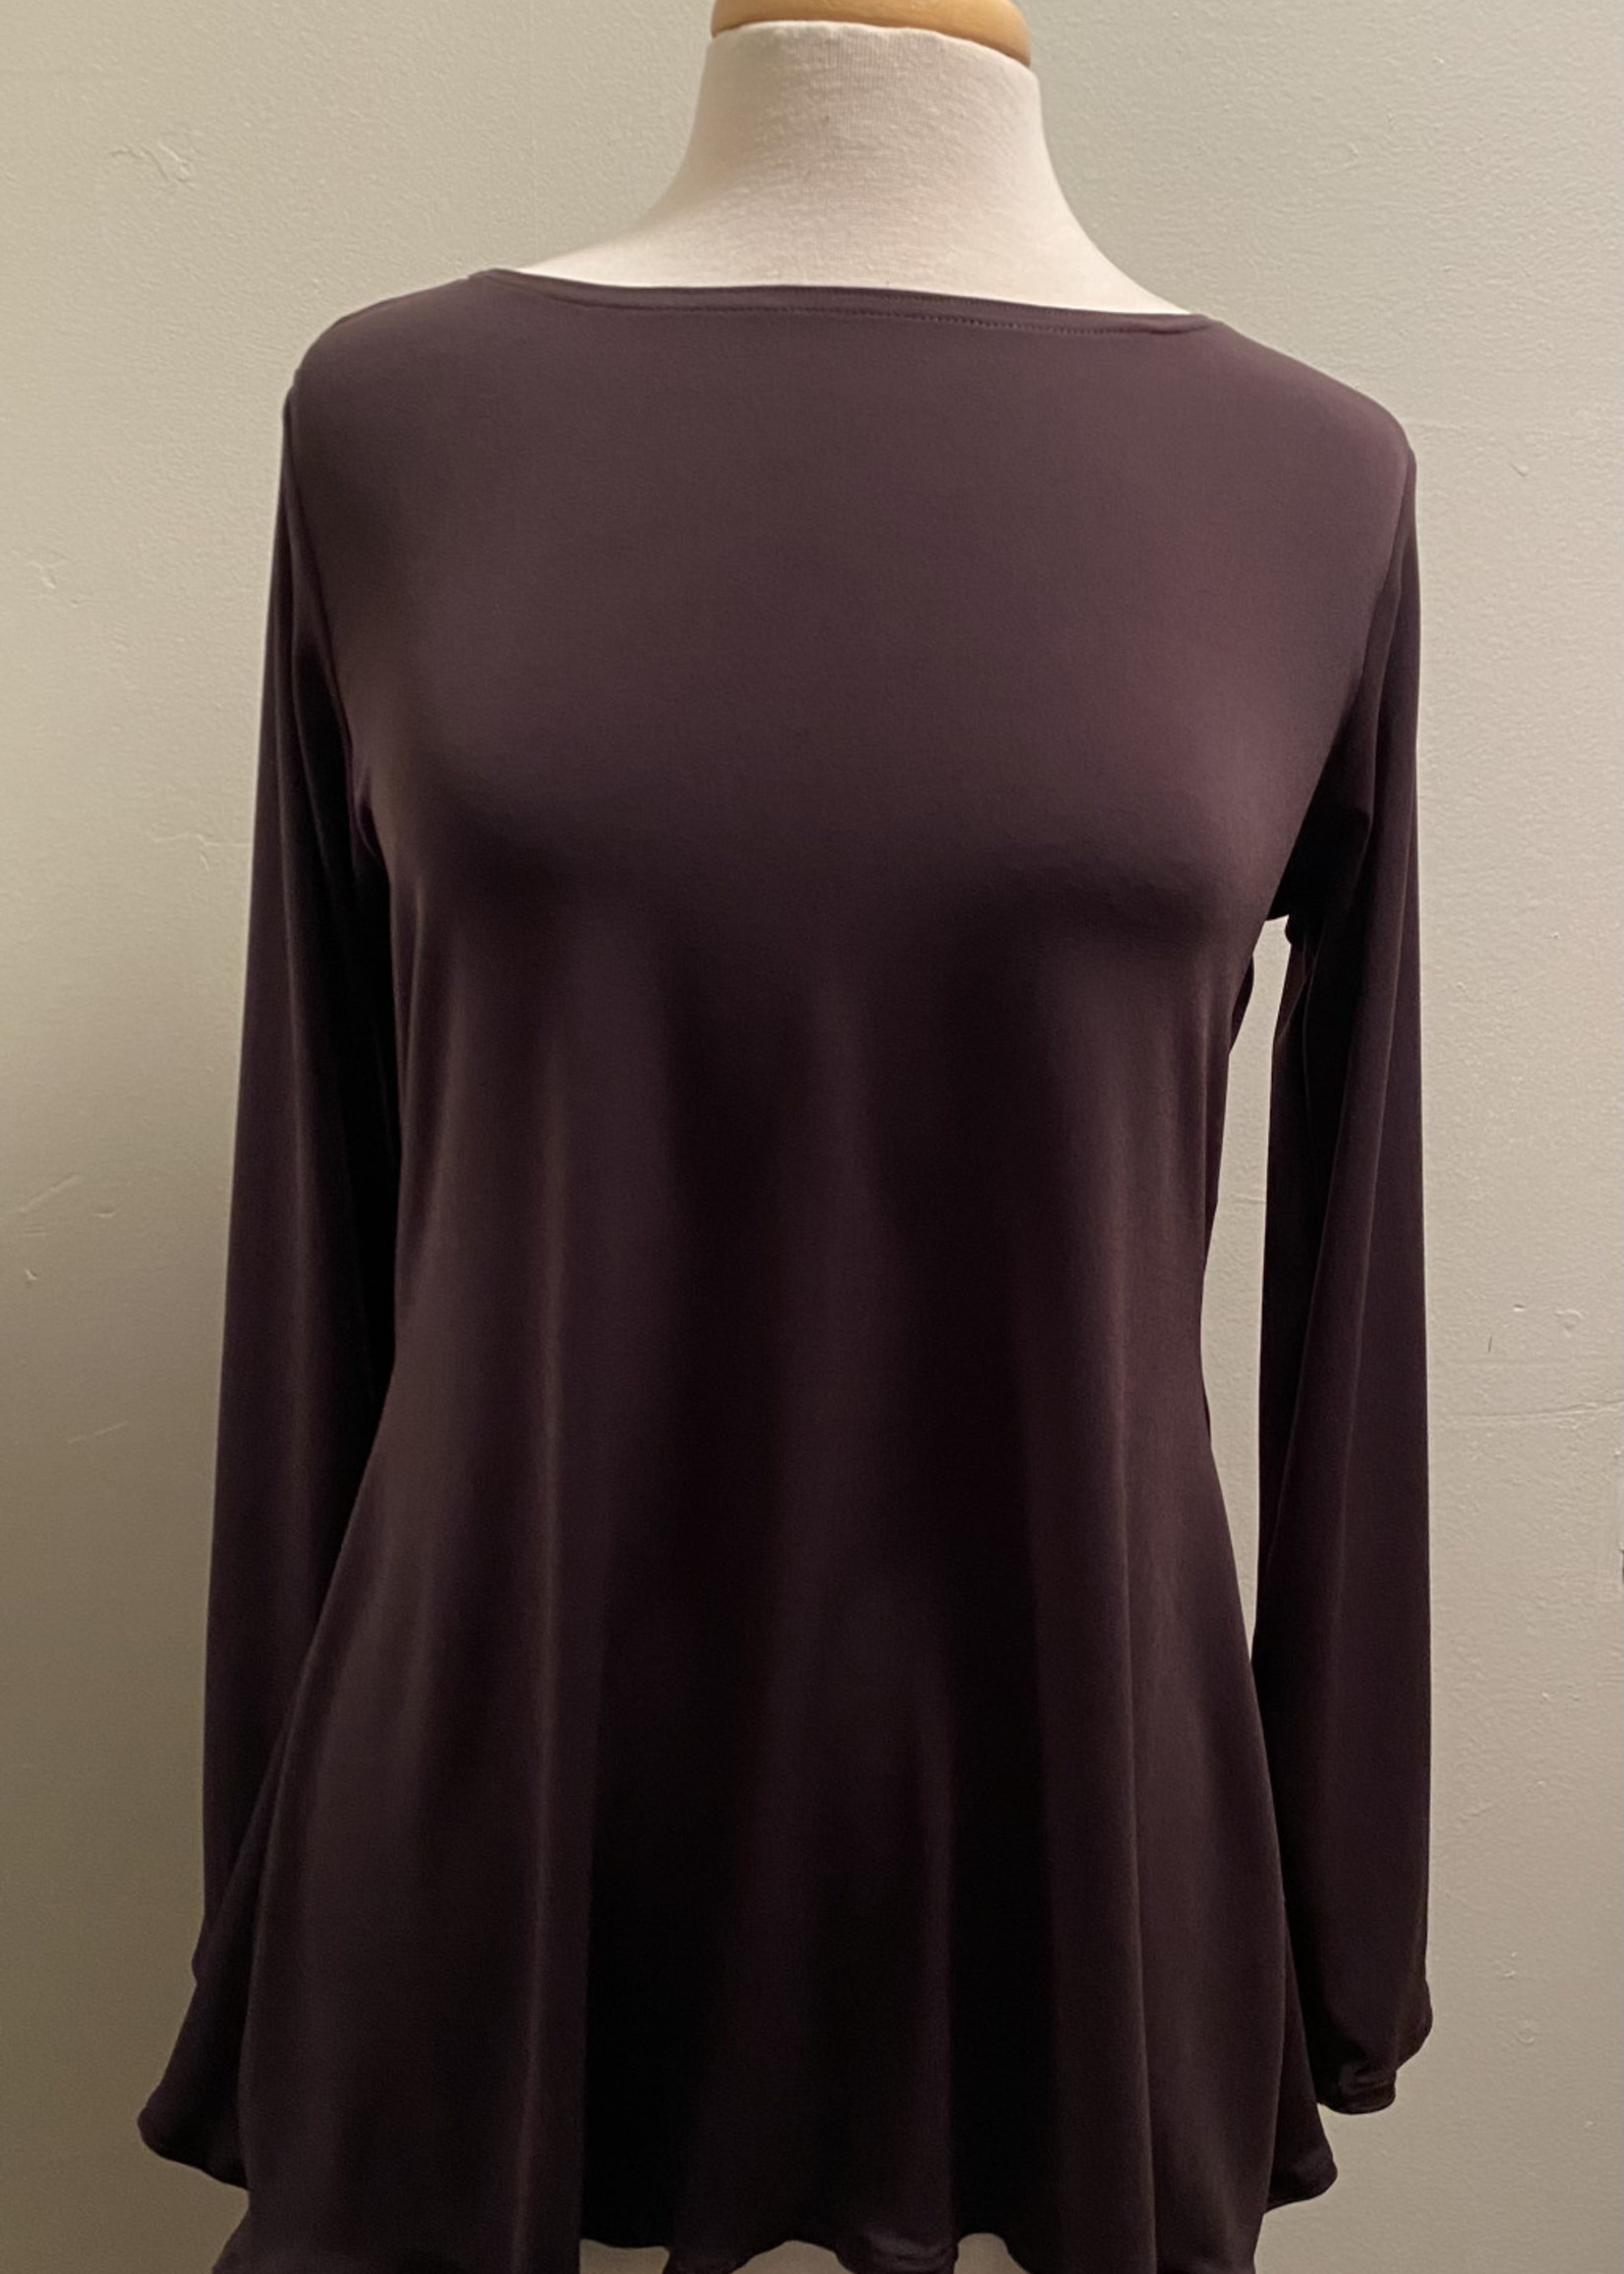 W SHIRT LONG SLEEVES- COUTURE JERSEY